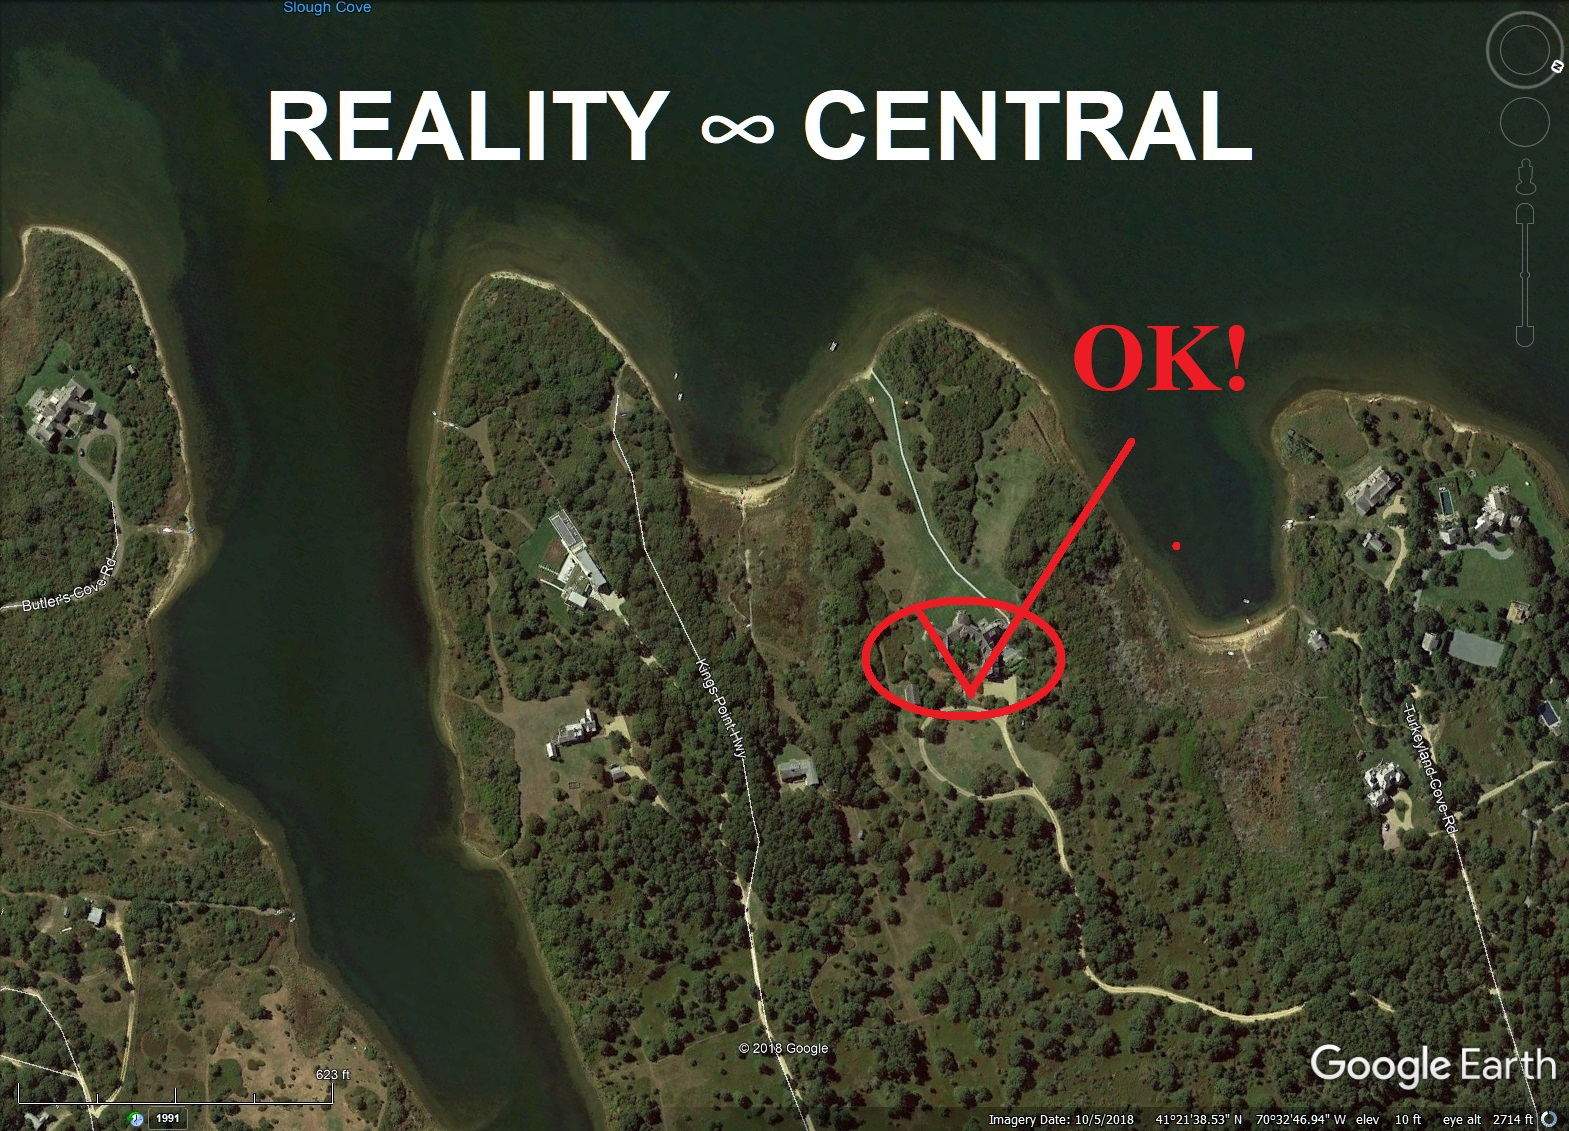 11,000 scientists can't be wrong-reality-central-slough-cove.jpg